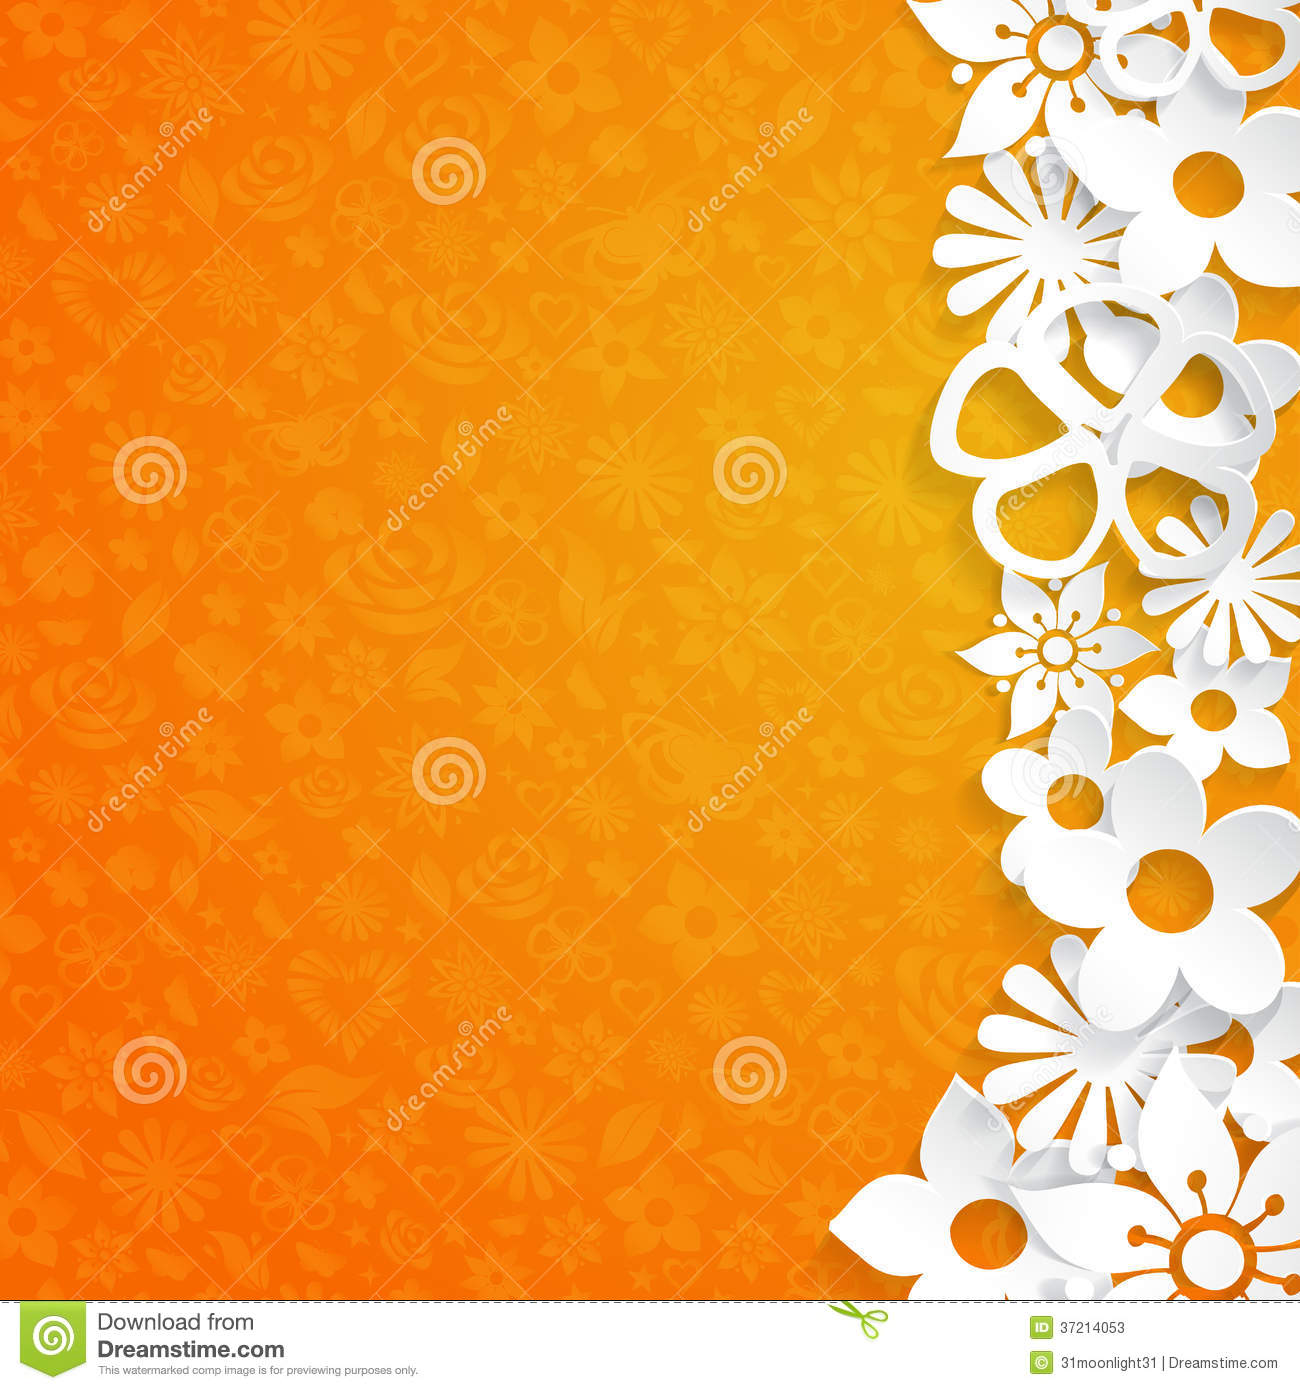 Background With Paper Flowers Stock Photos